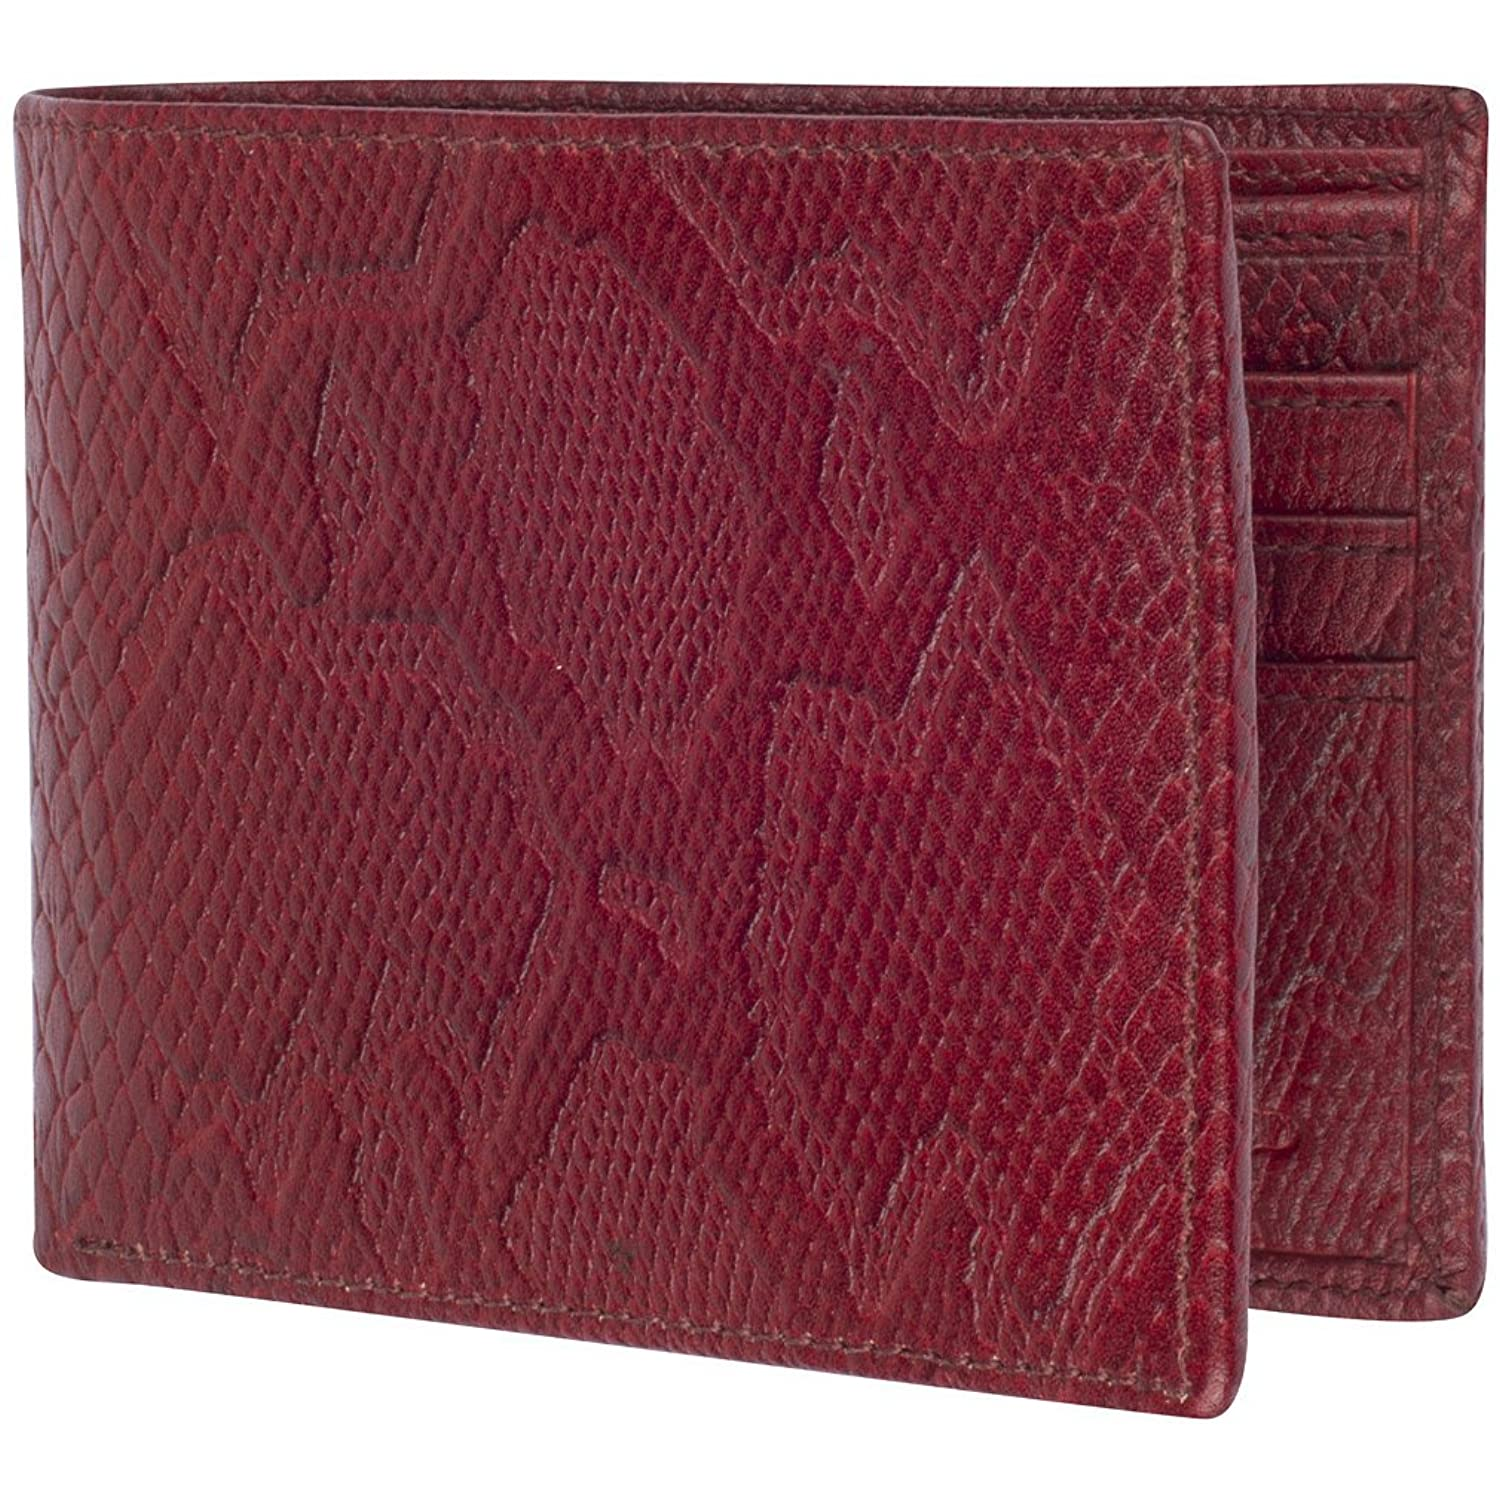 Access Denied Mens Leather RFID Blocking Wallet Bifold